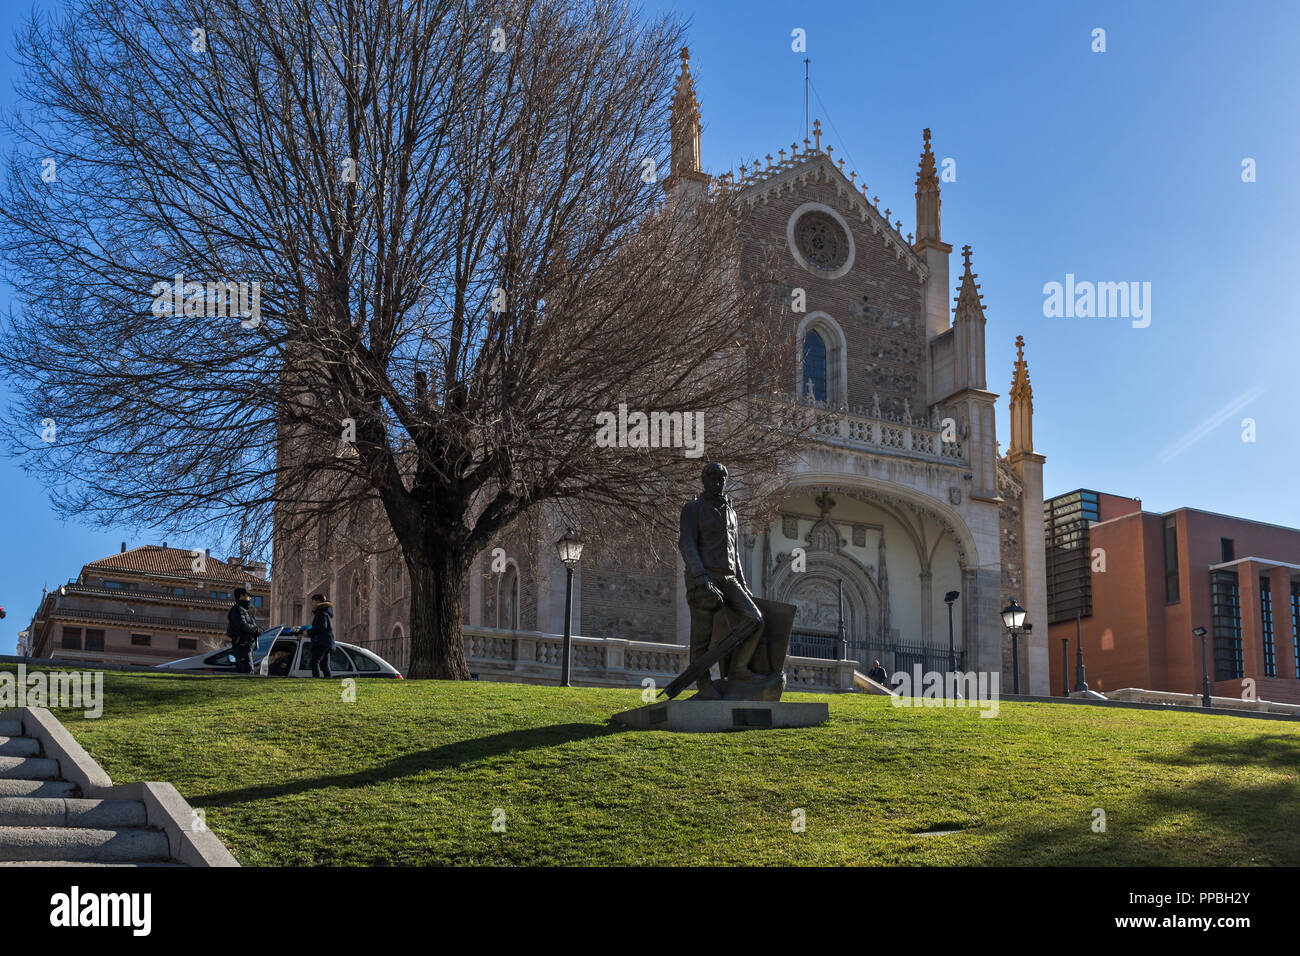 MADRID, SPAIN - JANUARY 22, 2018:  Amazing view of San Jeronimo el Rea church in City of Madrid, Spain - Stock Image